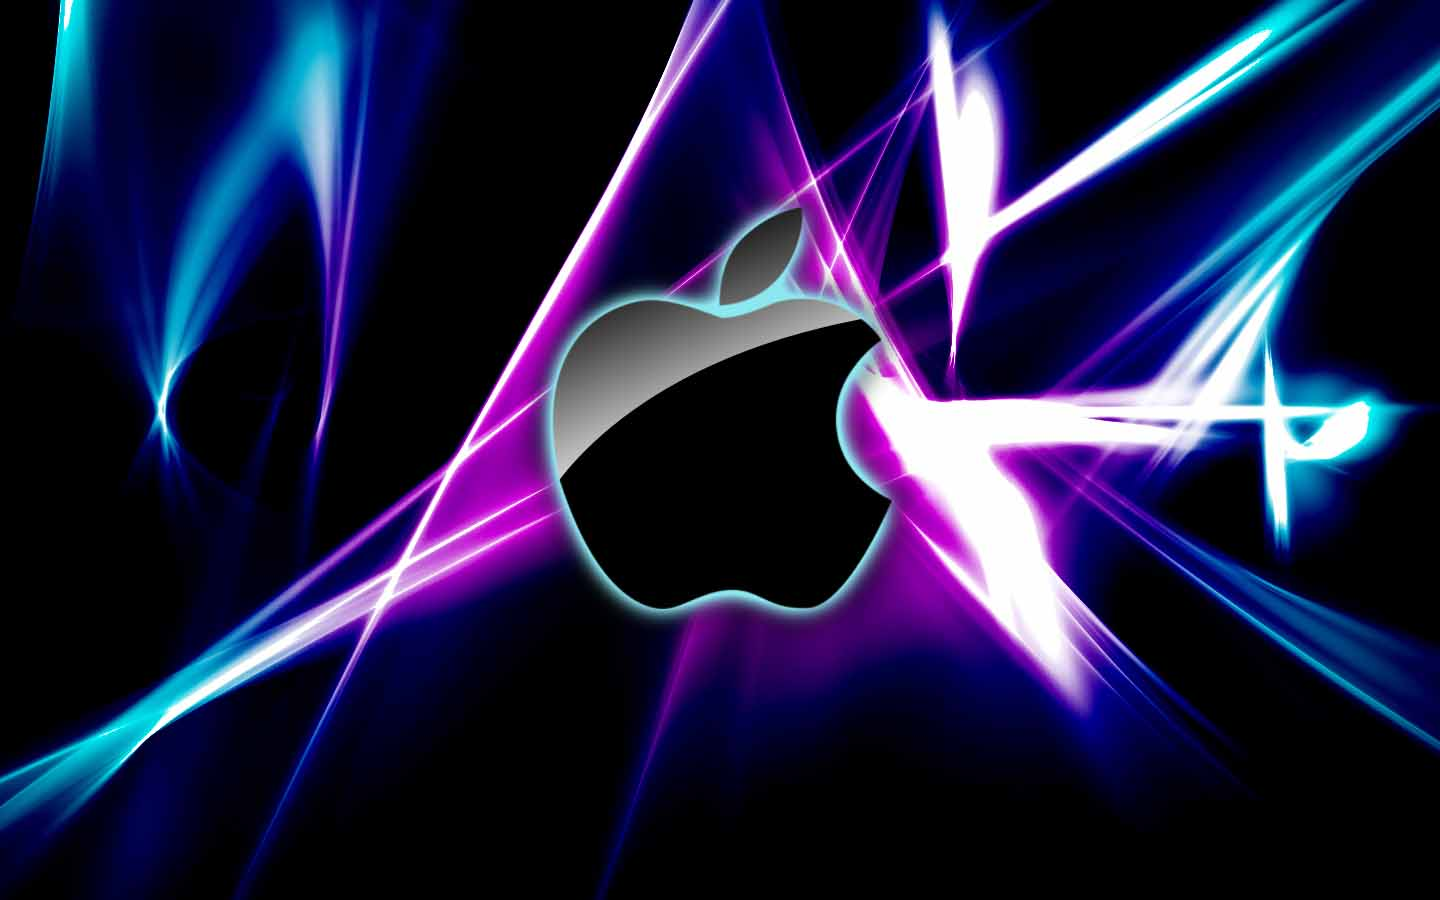 HD Apple Wallpapers | HD Wallpapers Pics